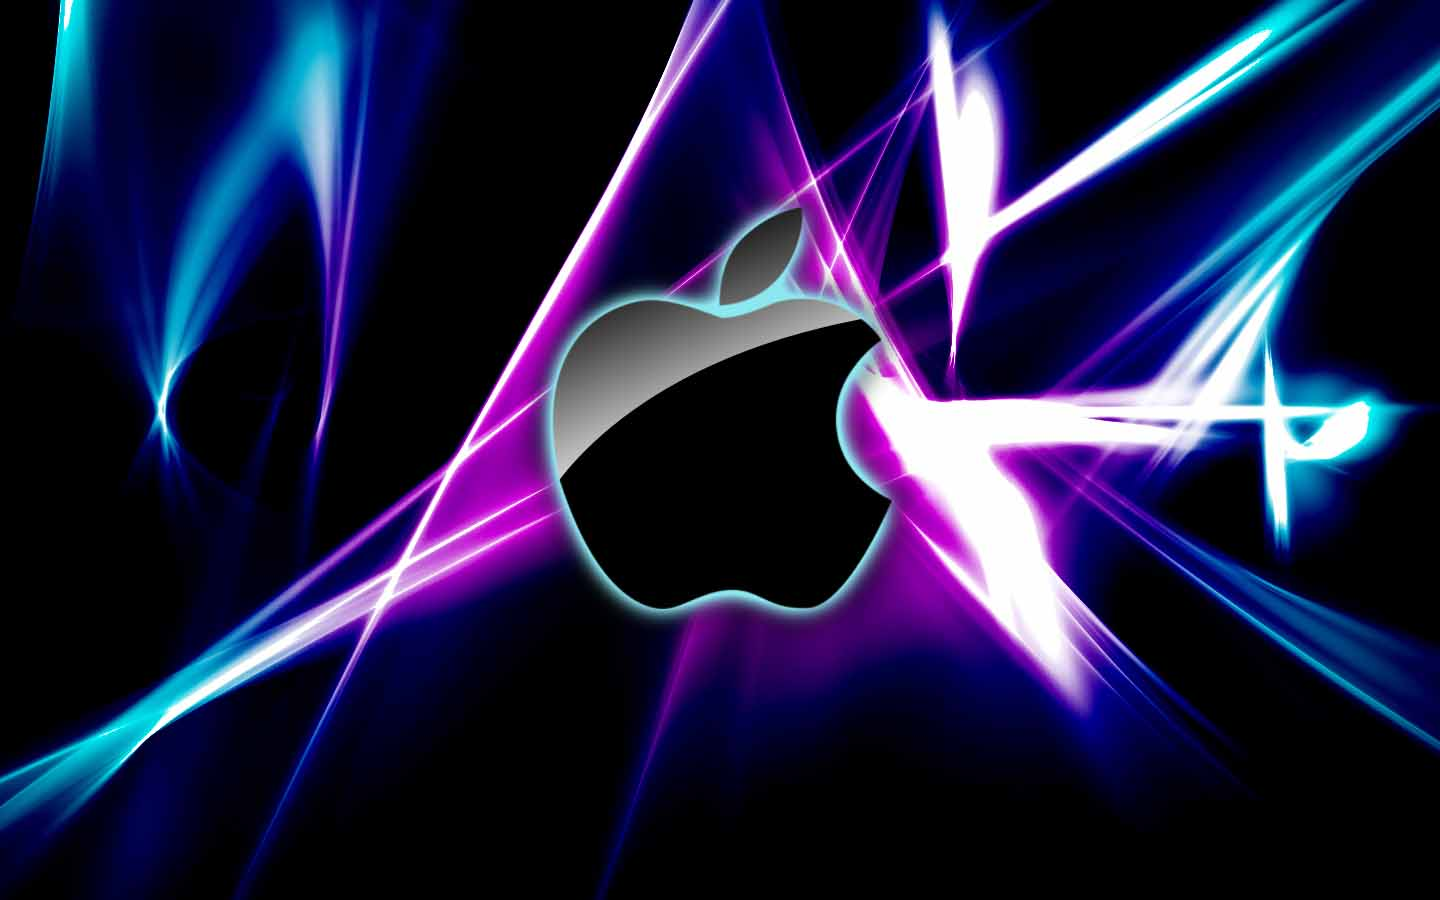 HD Apple Wallpapers | HD Wallpapers Pics